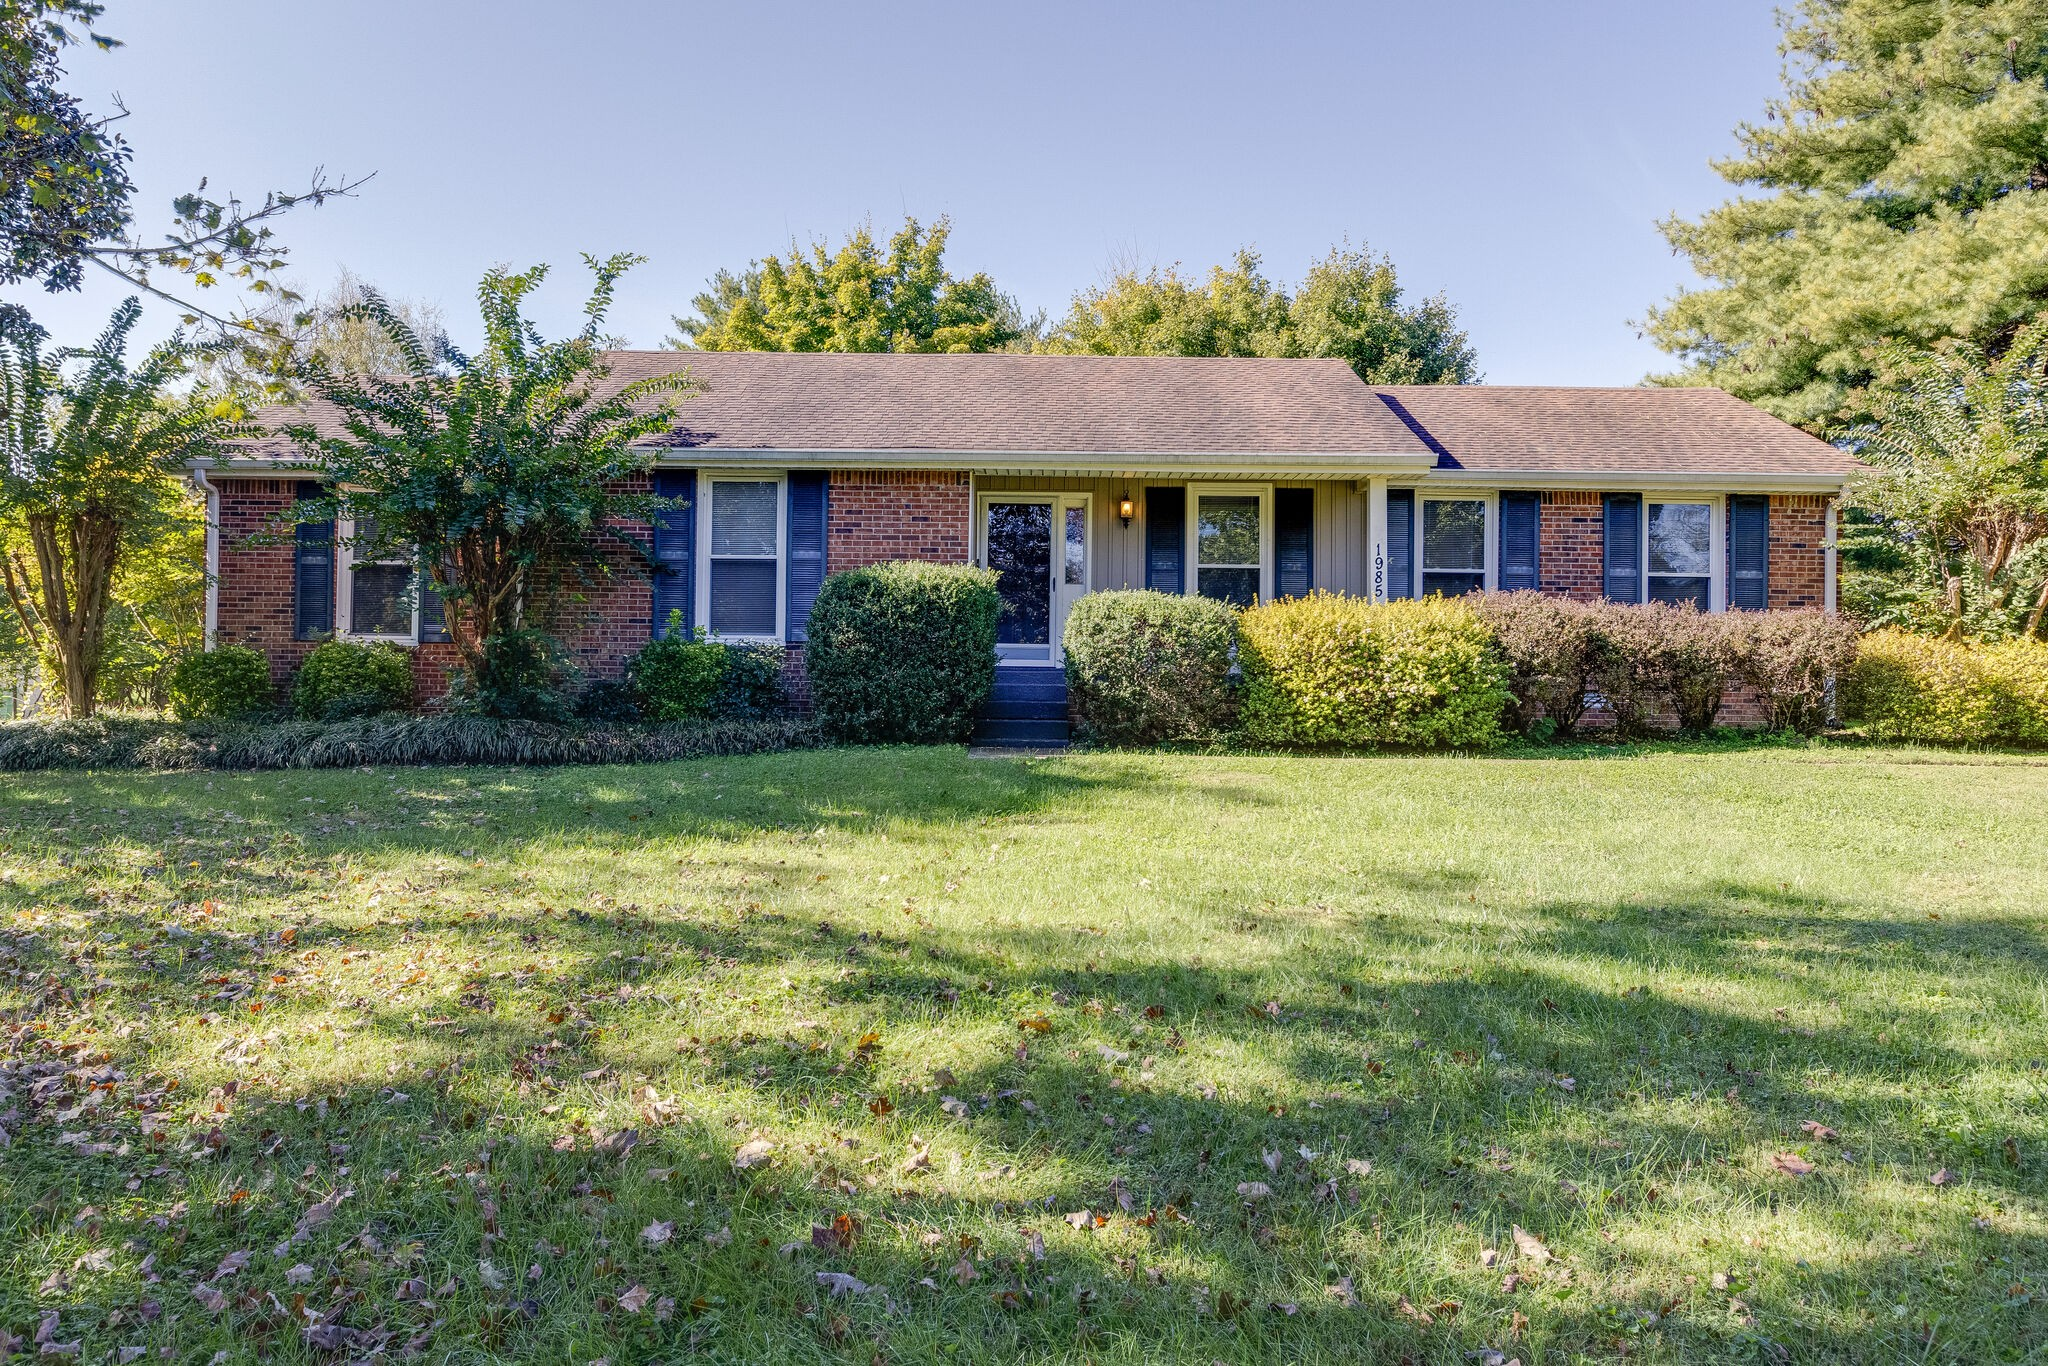 Private almost 1 acre flat lot w/NO HOA~Convenient to I-65, Downtown Franklin & Cool Springs~One level living~3/2 with bonus, formal dining, living room, den with fireplace and eat-in kitchen~Surrounded by mature trees~Roof(2007) & HVAC(2018)~Sheds remain~Excellent opportunity to add-on or tear down and build new